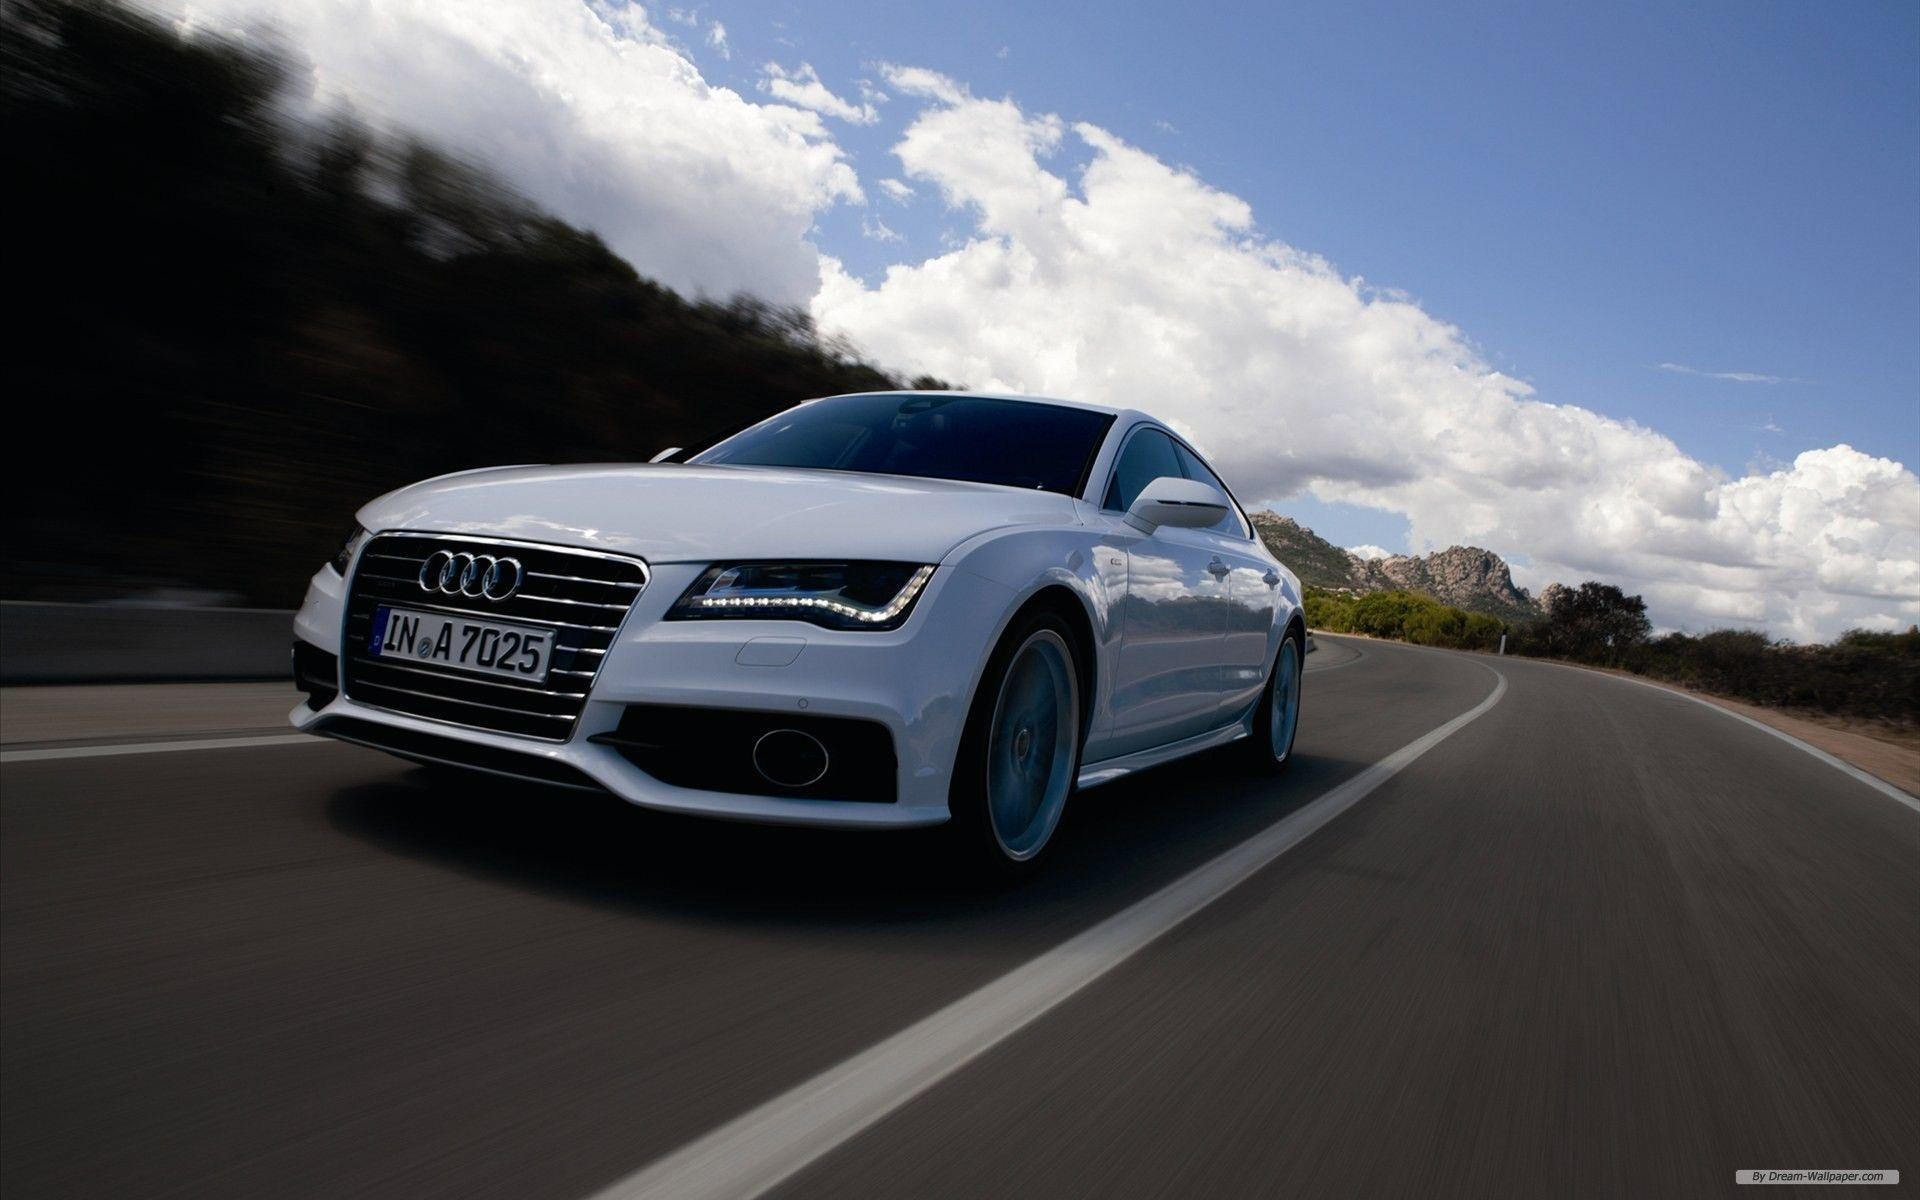 Audi A7 HD wallpapers